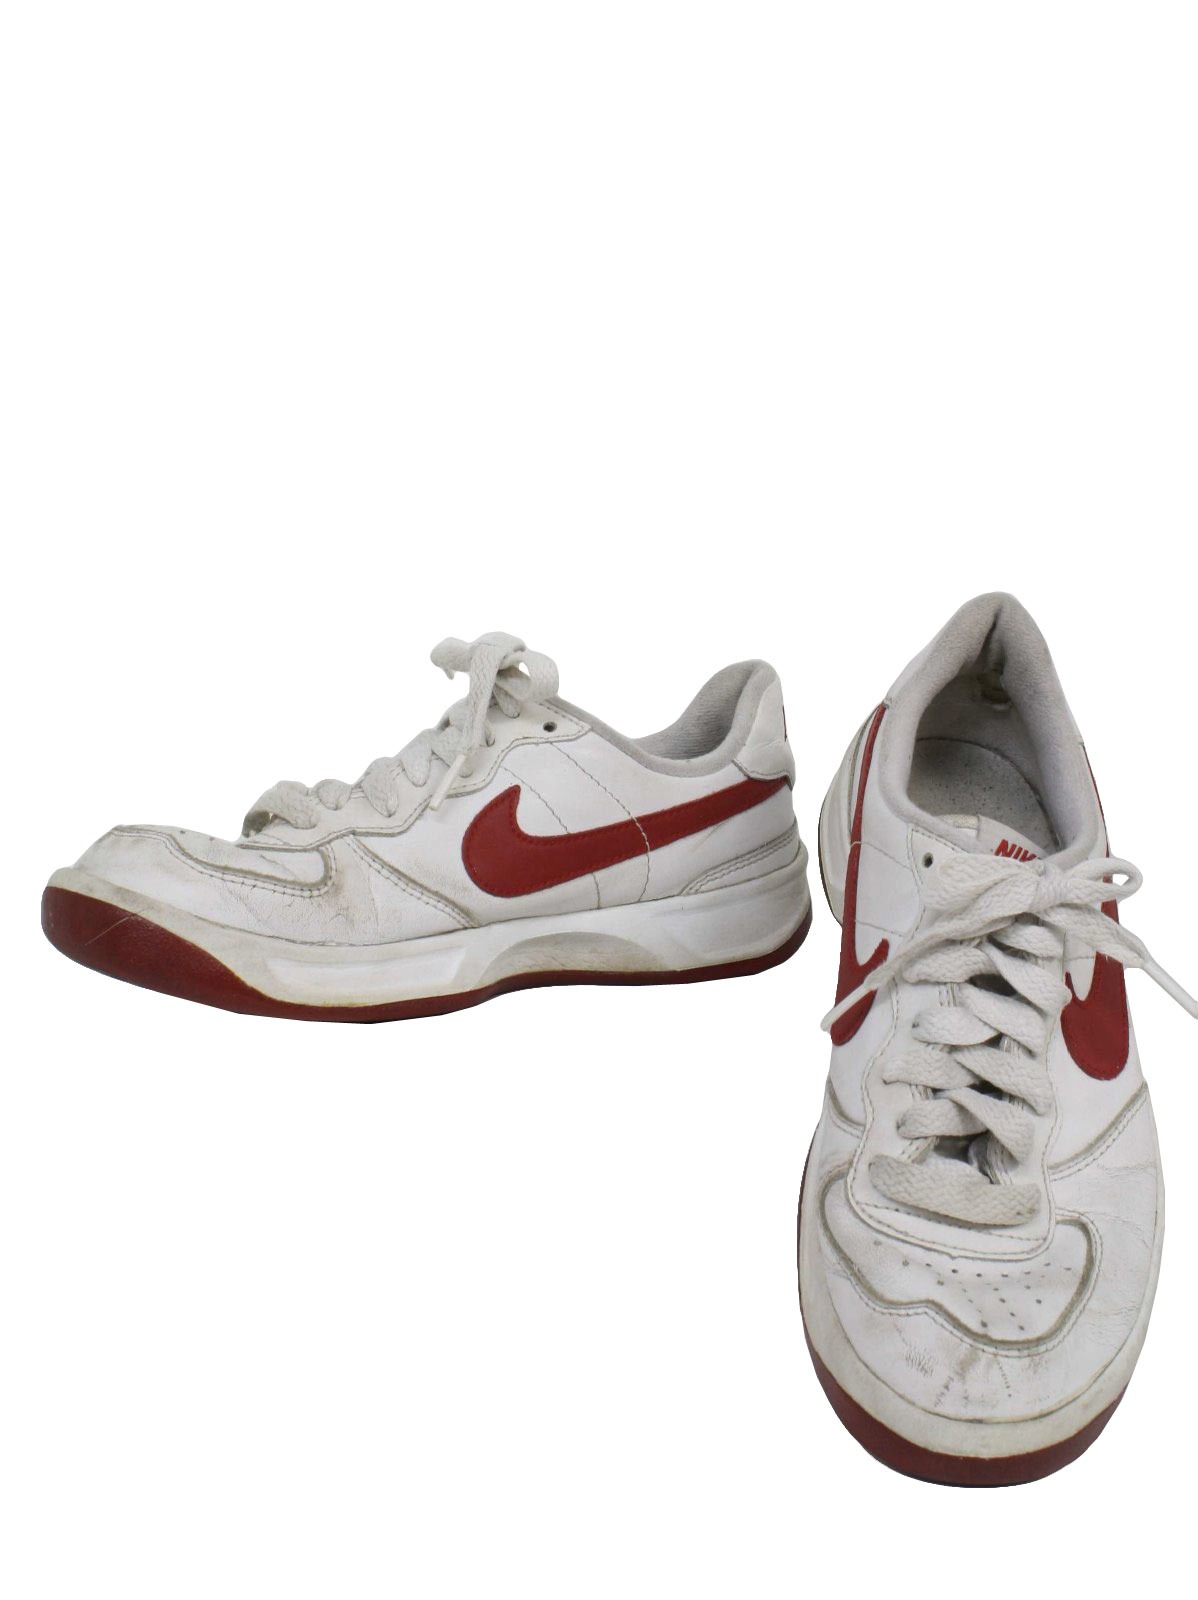 1990s Vintage Shoes: 90s -Nike- Mens white with red swoosh flat bottom old  school style tennis shoes. Shoes show light wear but still have a long life  to ...